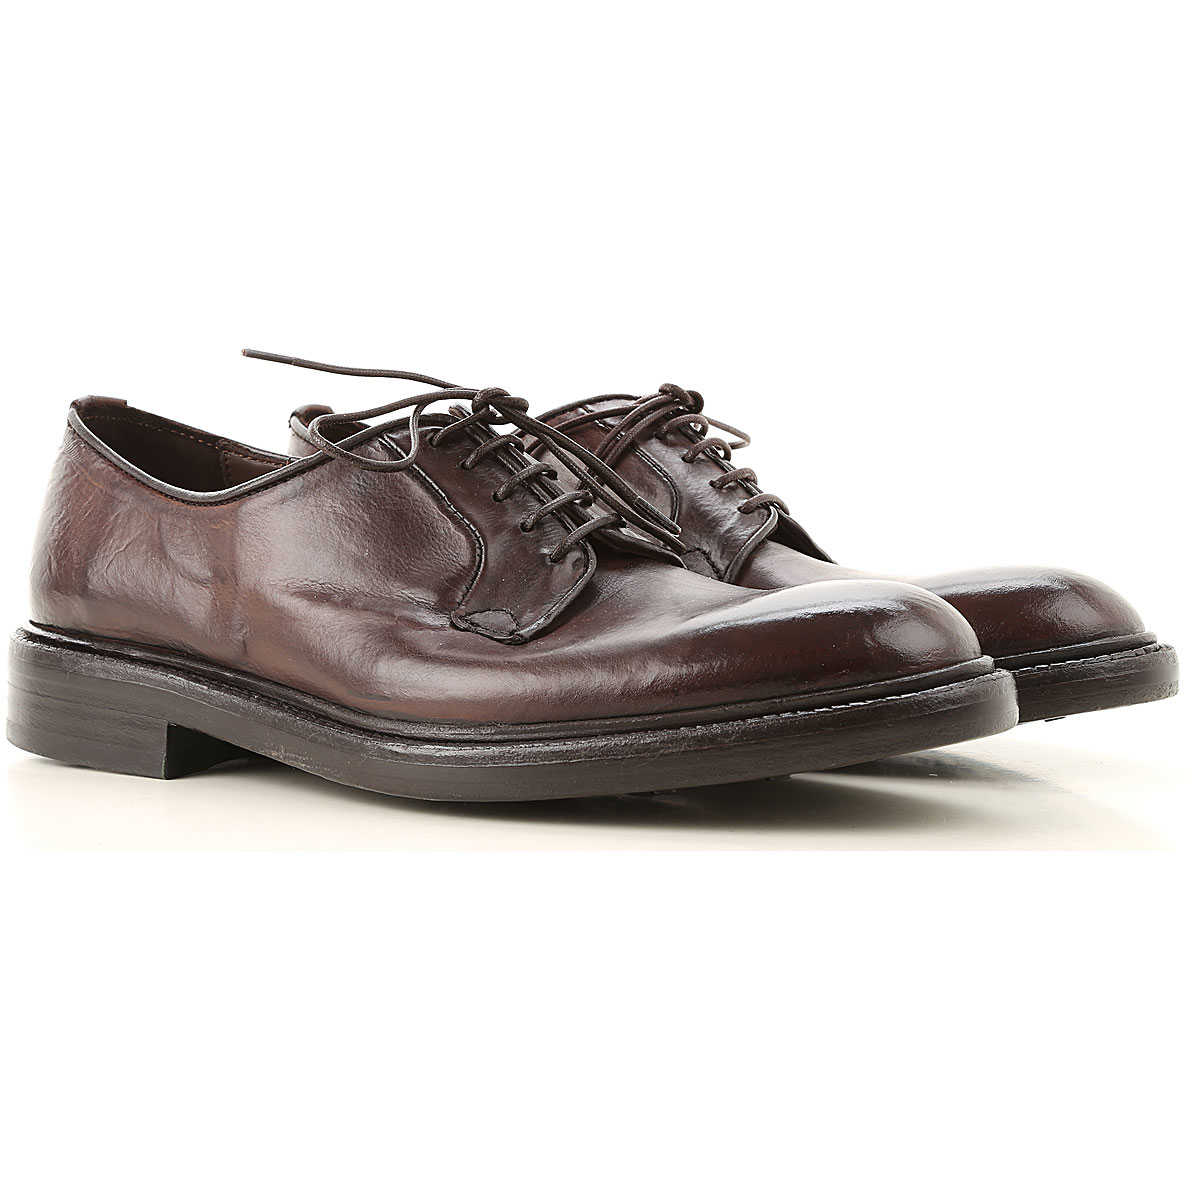 Green George Lace Up Shoes for Men Oxfords Derbies and Brogues SE - GOOFASH